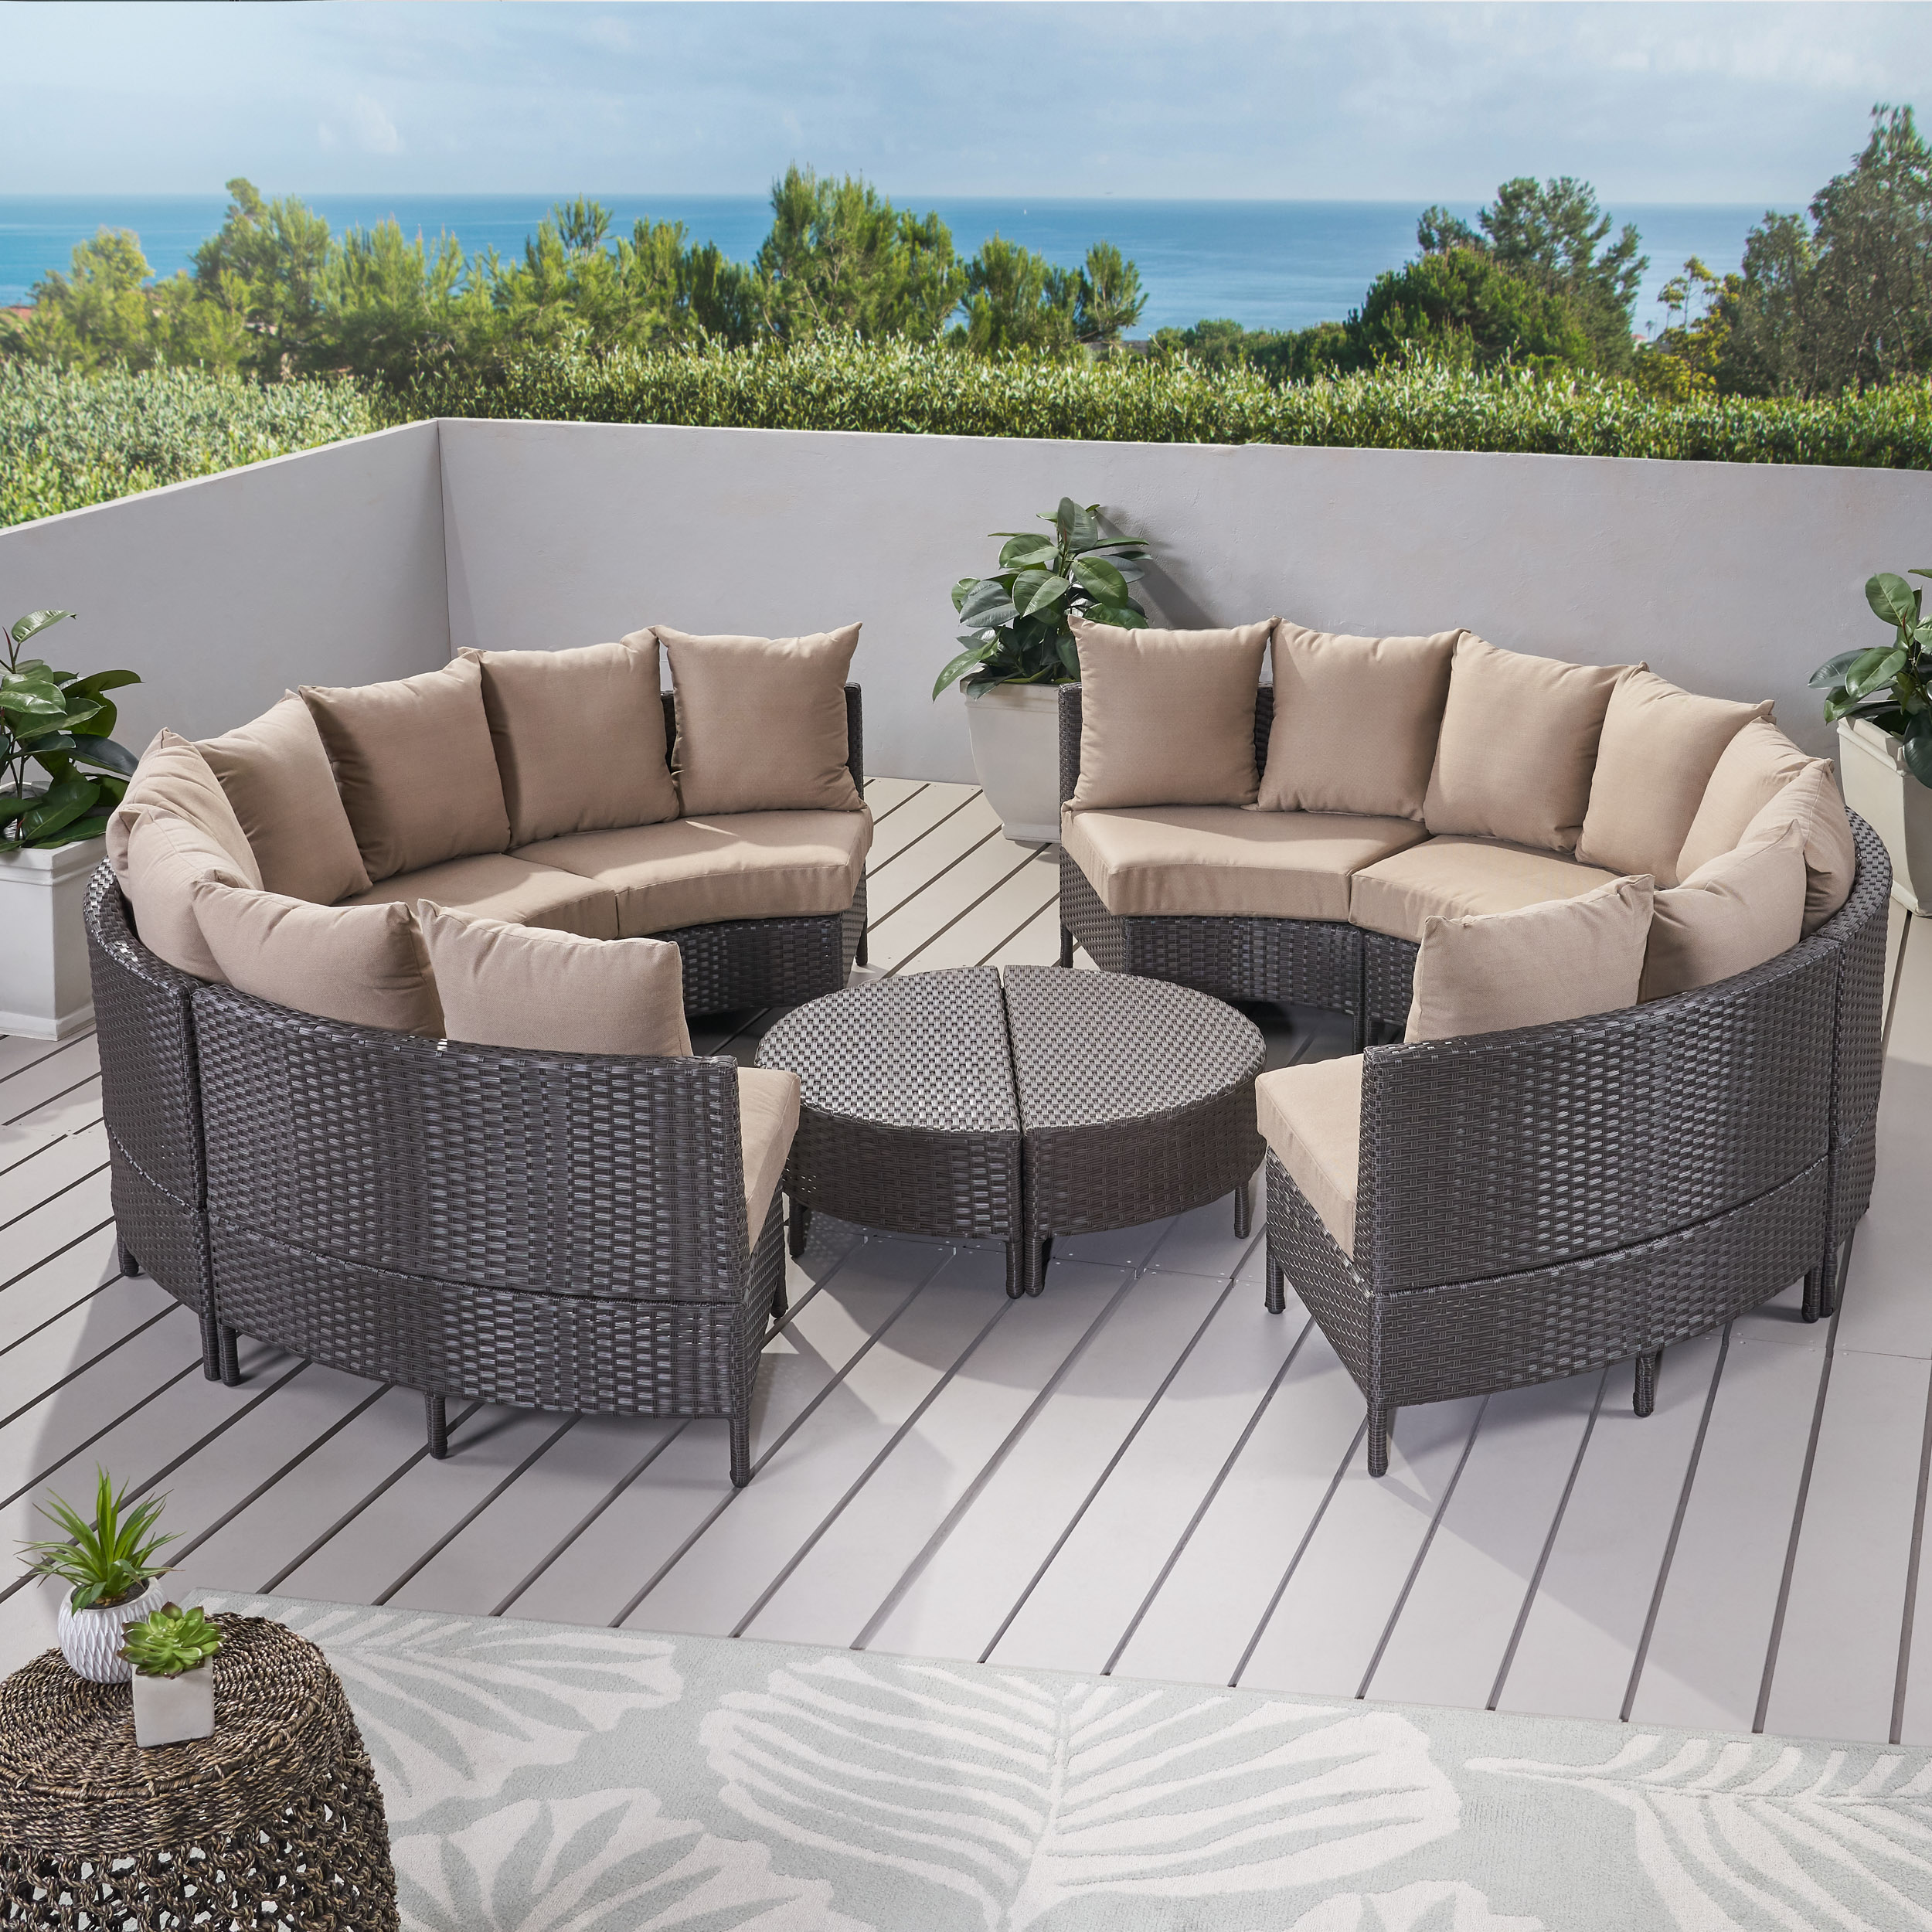 Miggy Outdoor 8 Seater Round Wicker Sectional Sofa Set With Coffee Tables Dark Brown And Beige Walmart Com Walmart Com